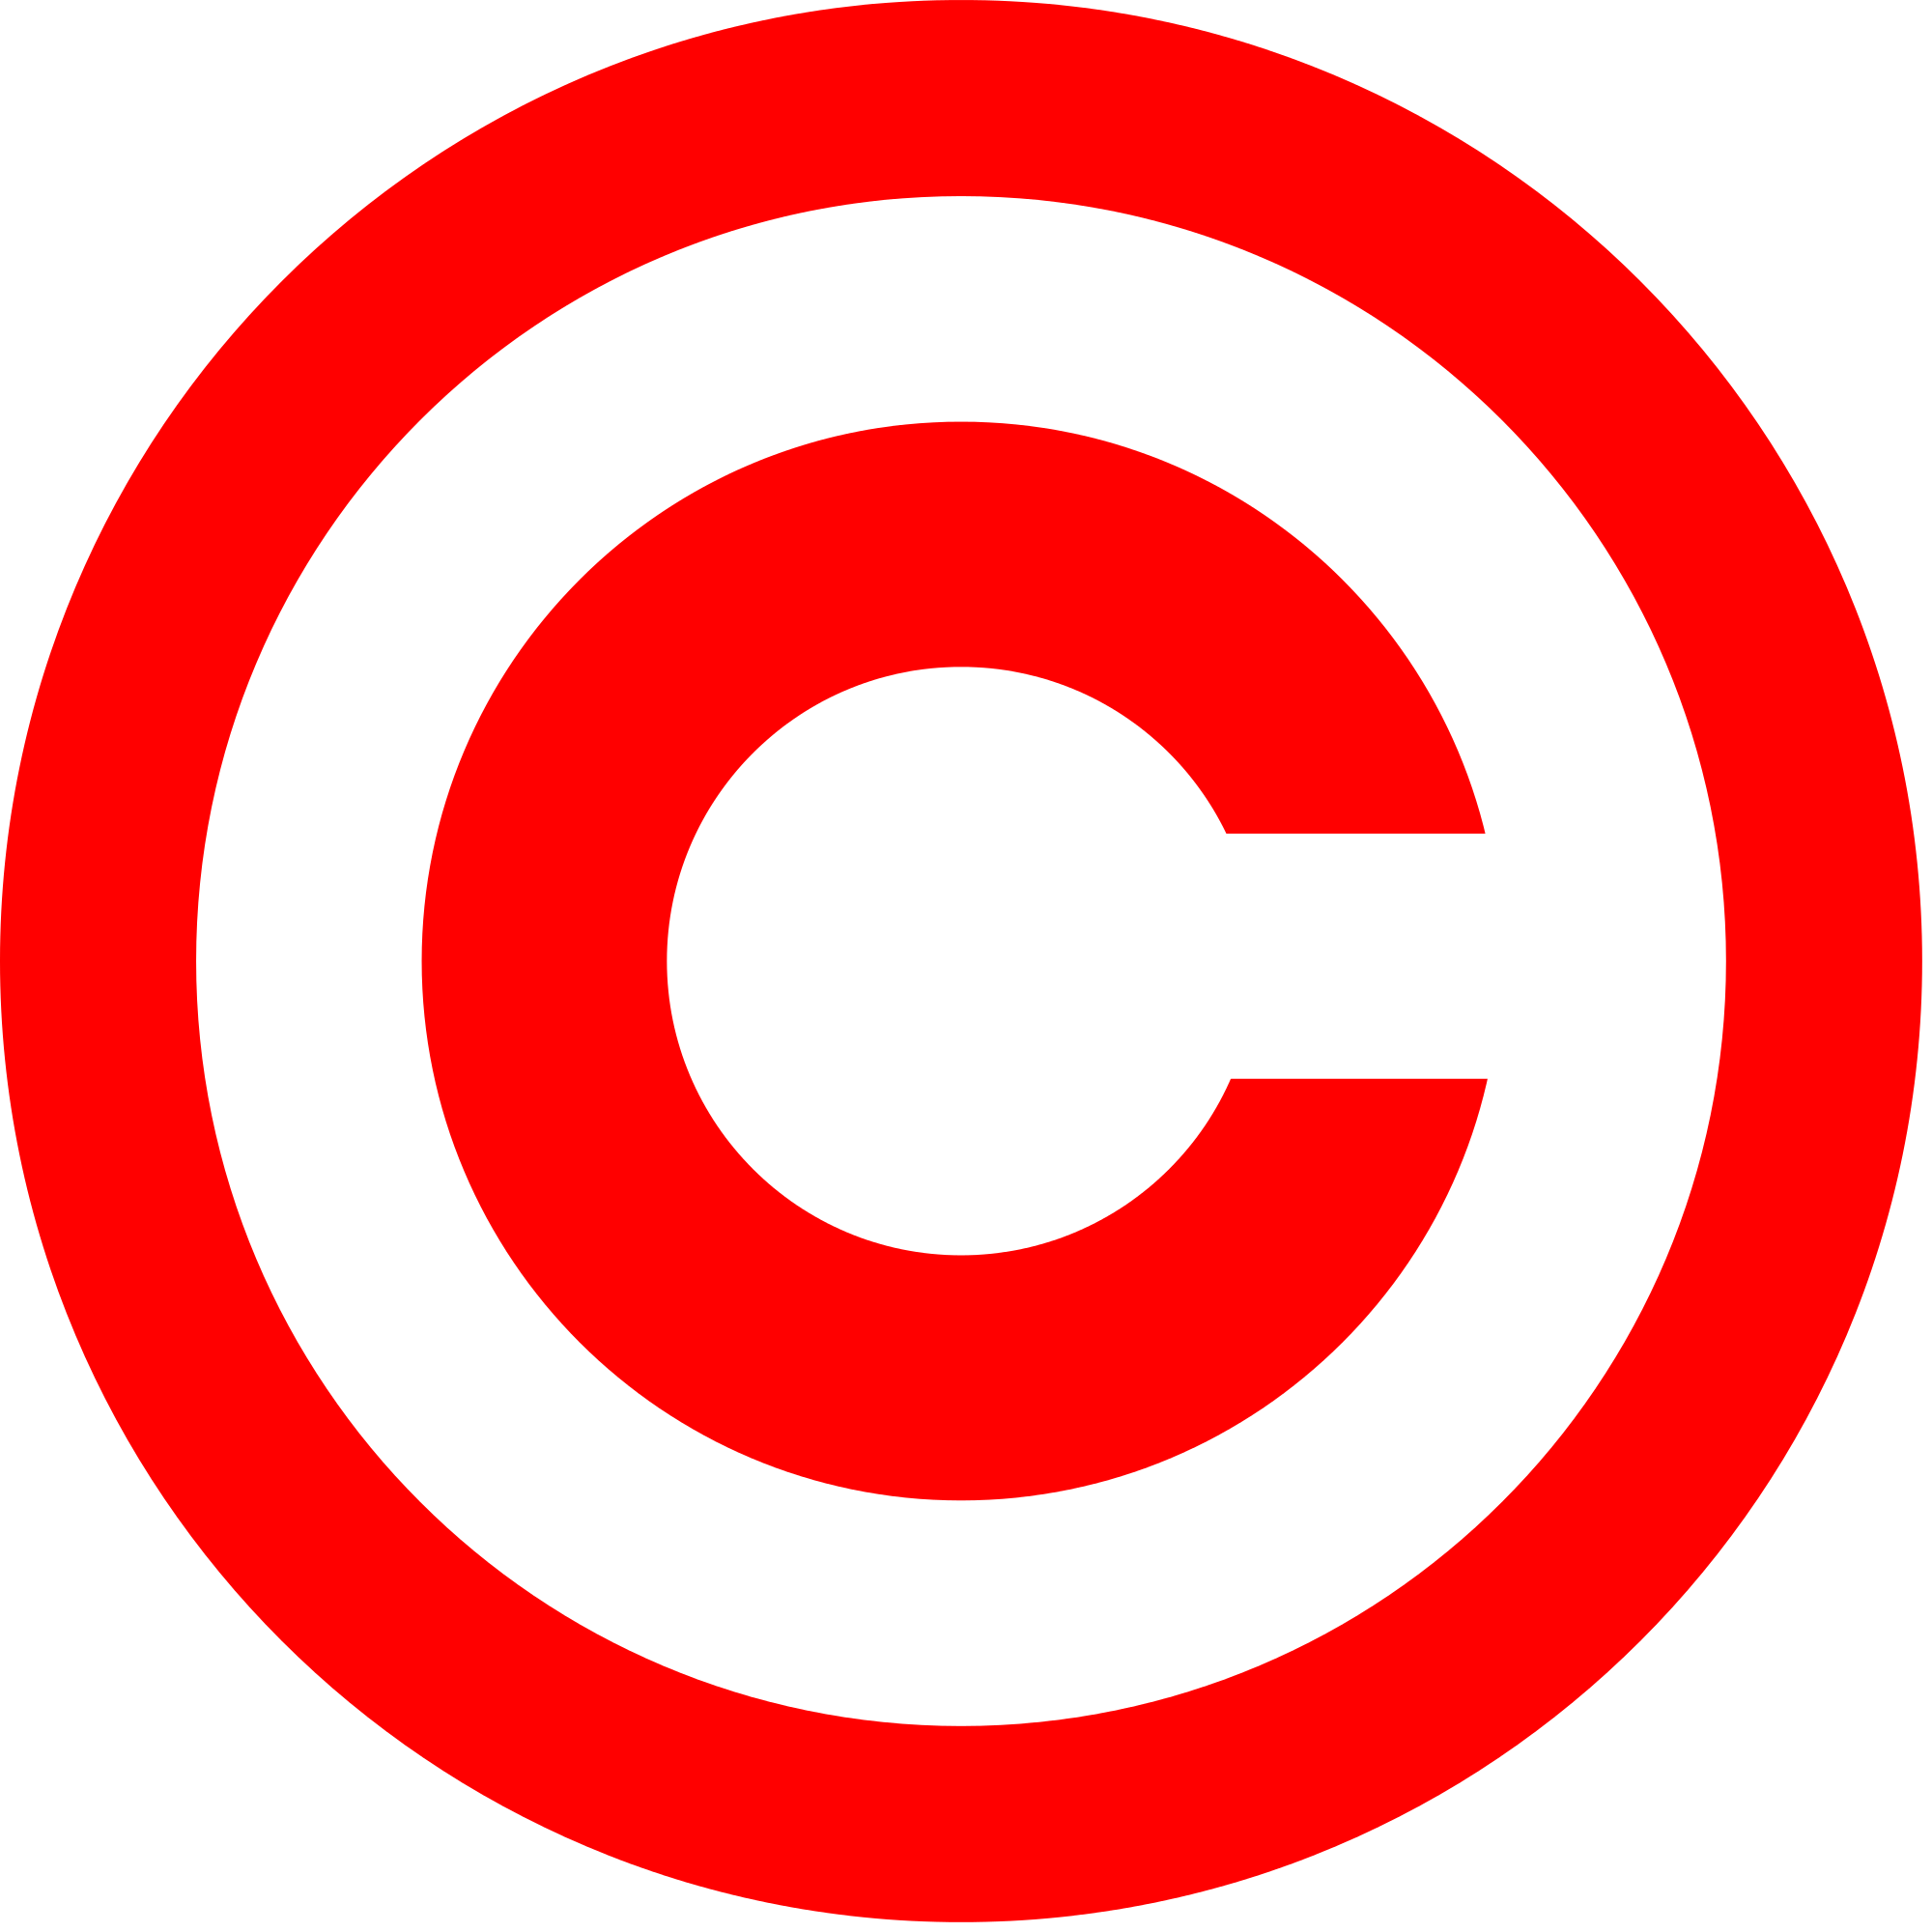 Copyright information for schools